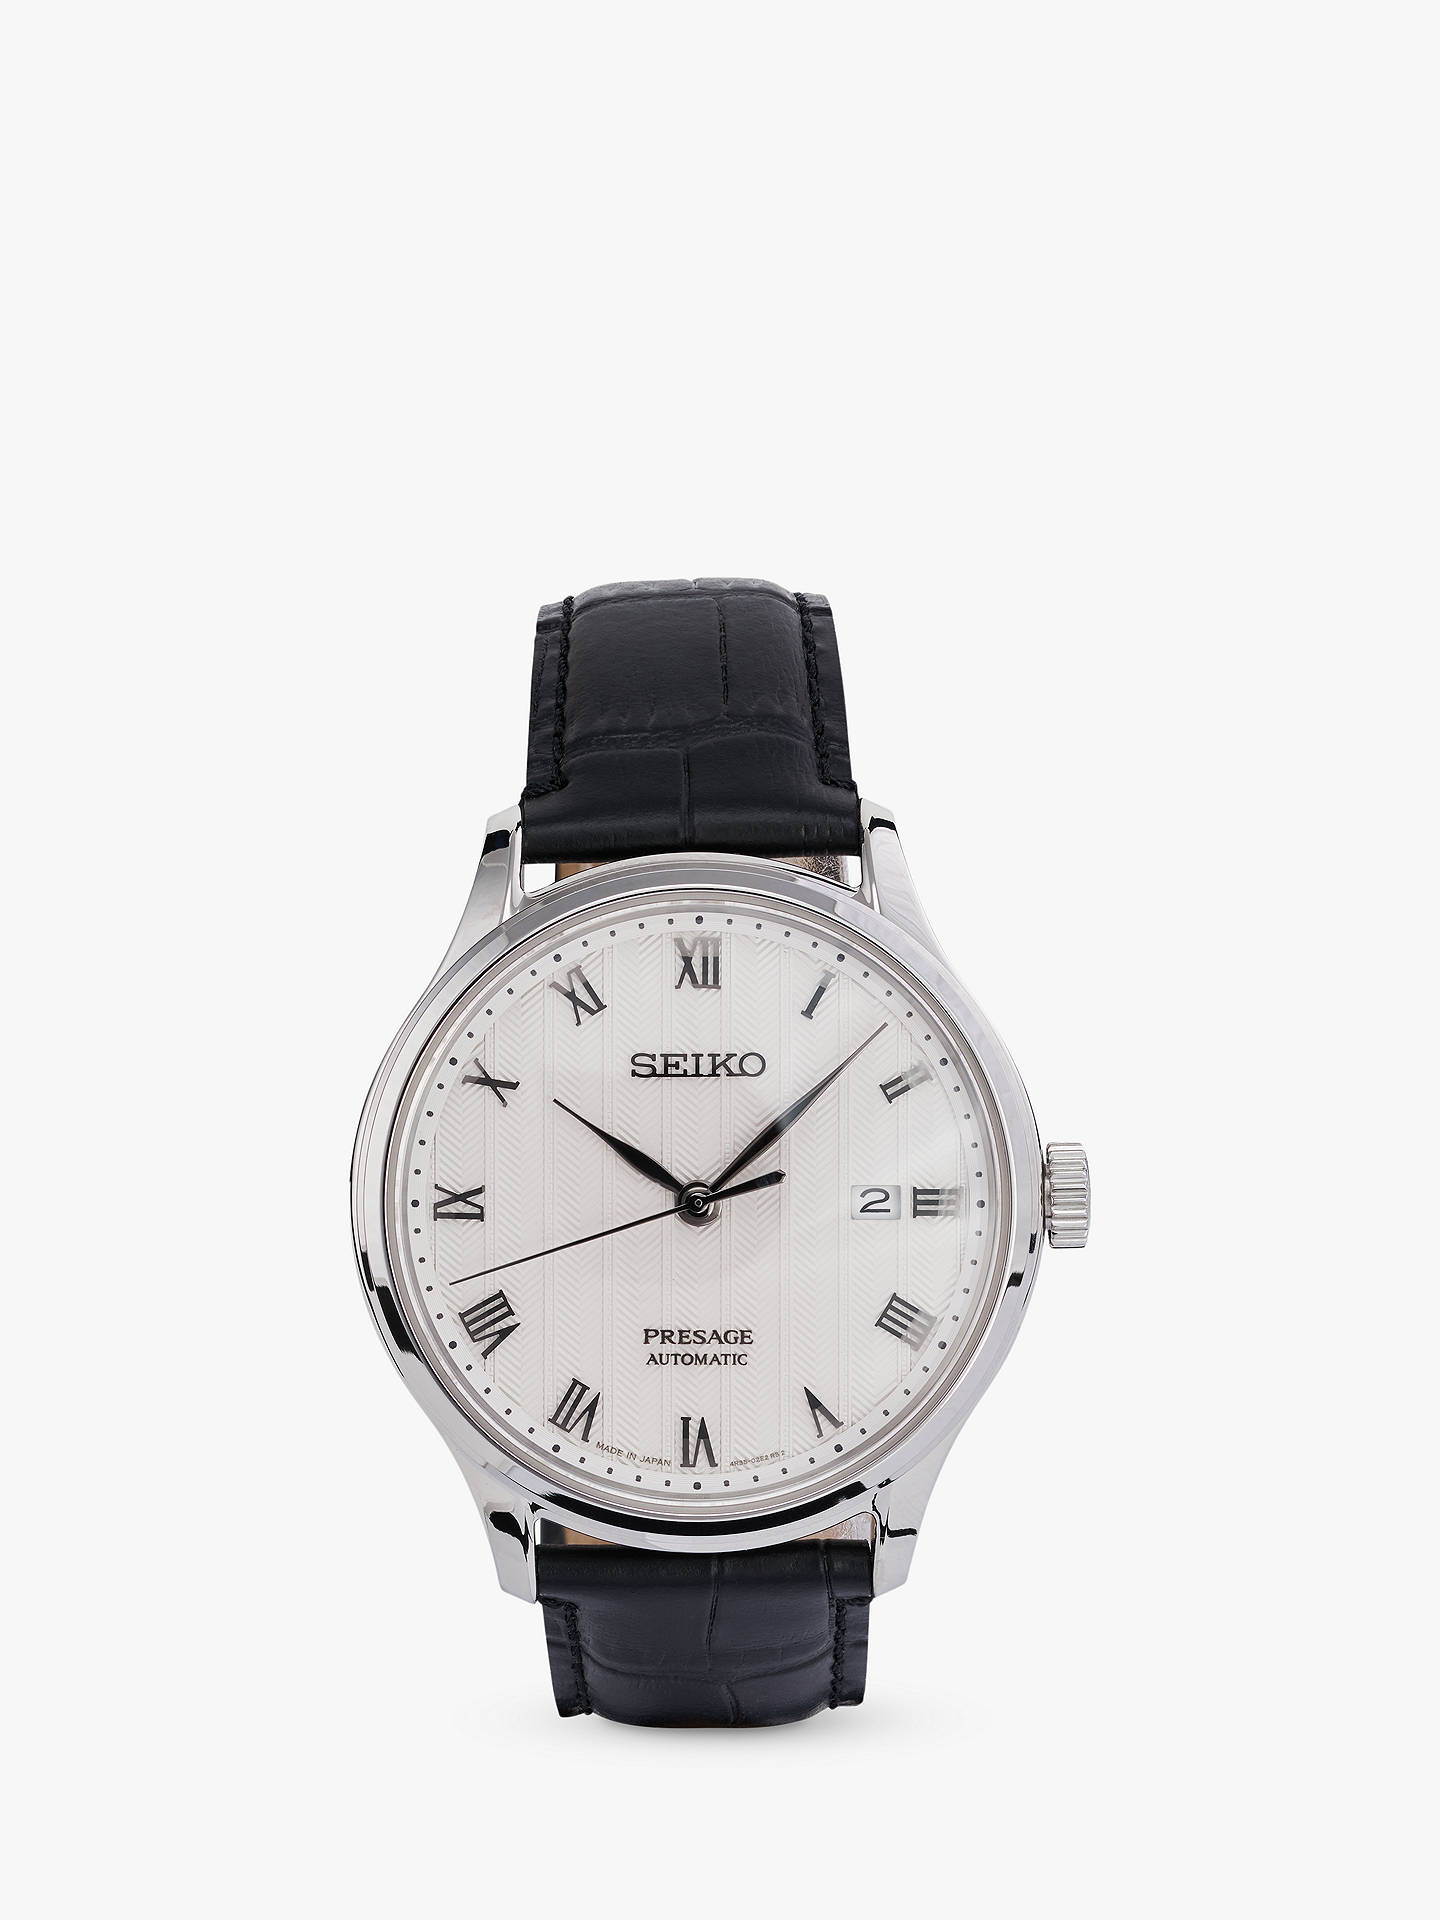 Seiko Srpc83j1 Men S Presage Automatic Date Leather Strap Watch Black White